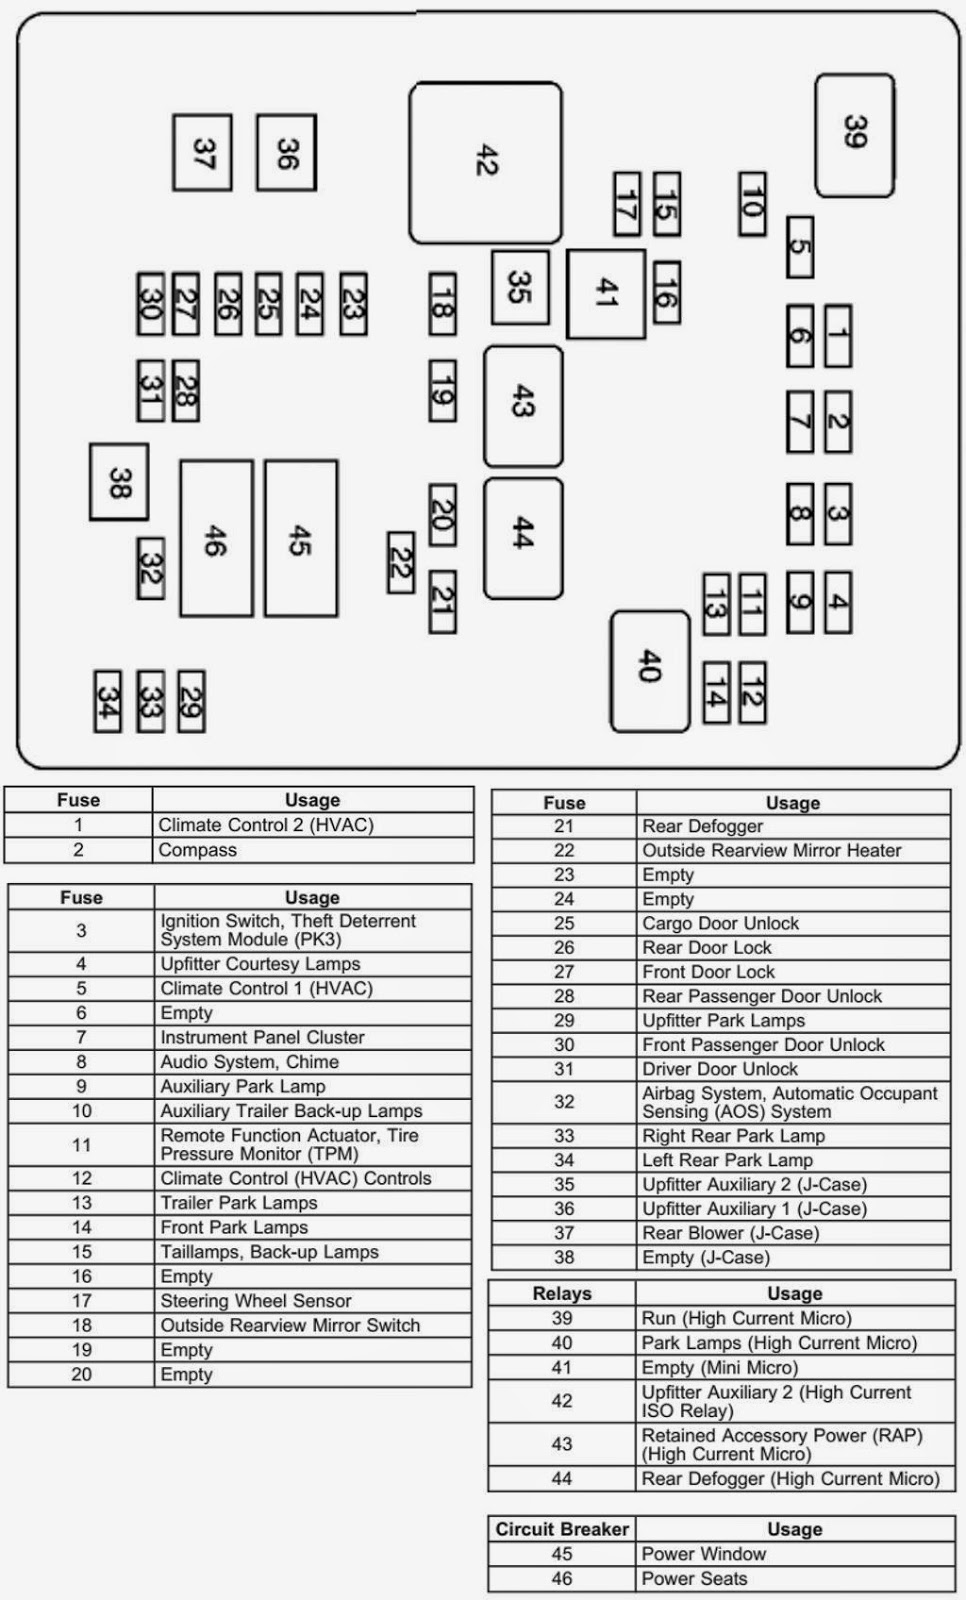 2008 chevy express fuse diagram wiring diagrams and free manual ebooks: 2008 chevrolet ... 2008 chevy express wiring diagram